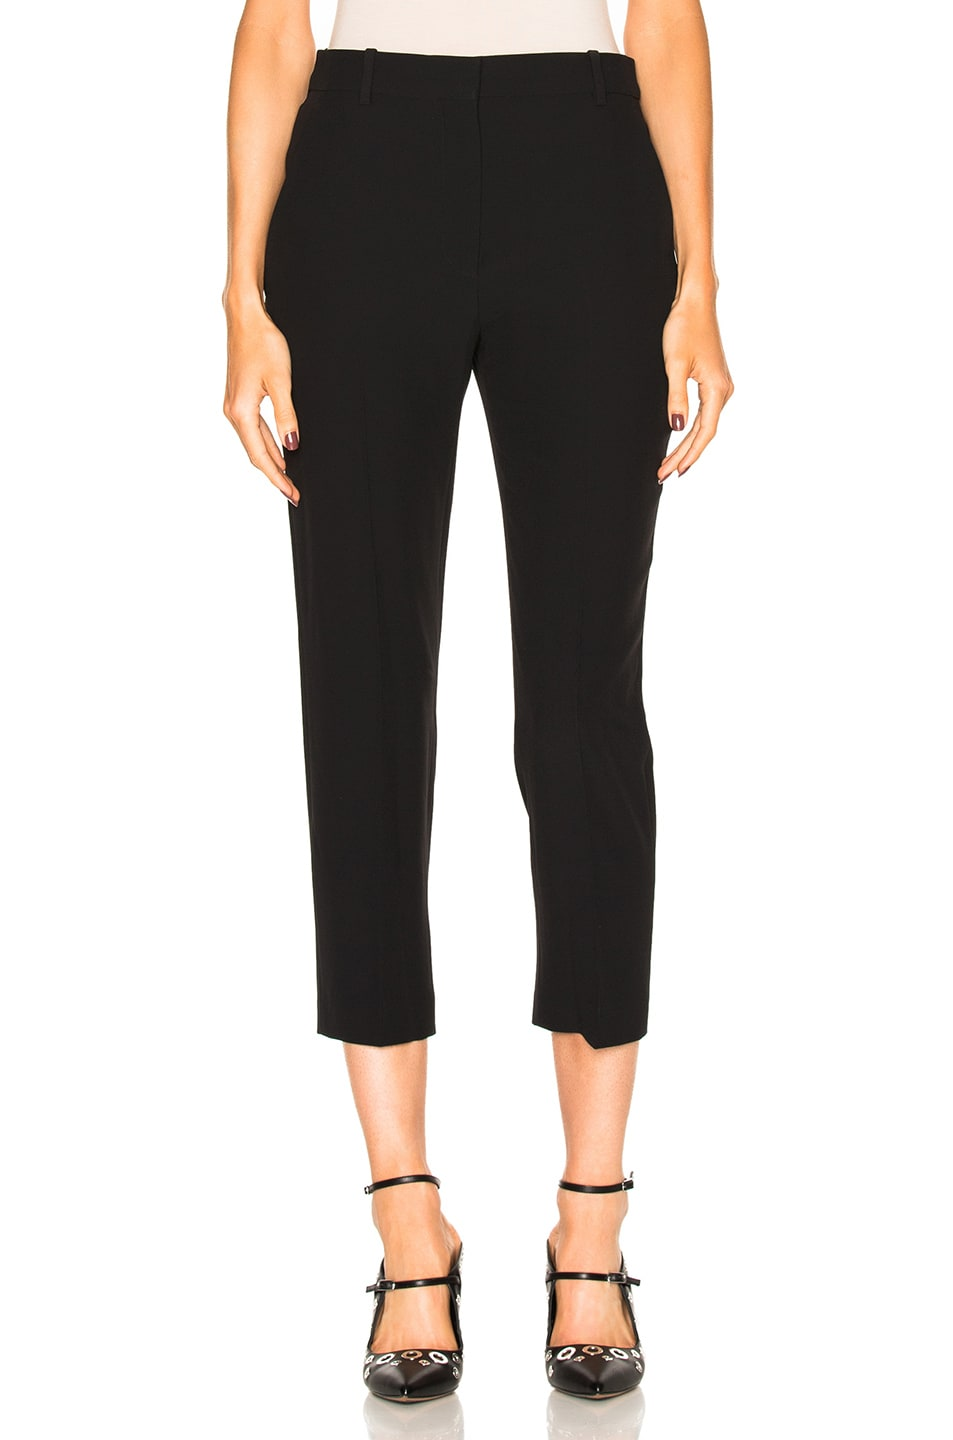 Image 1 of Alexander McQueen Cigarette Trousers in Black